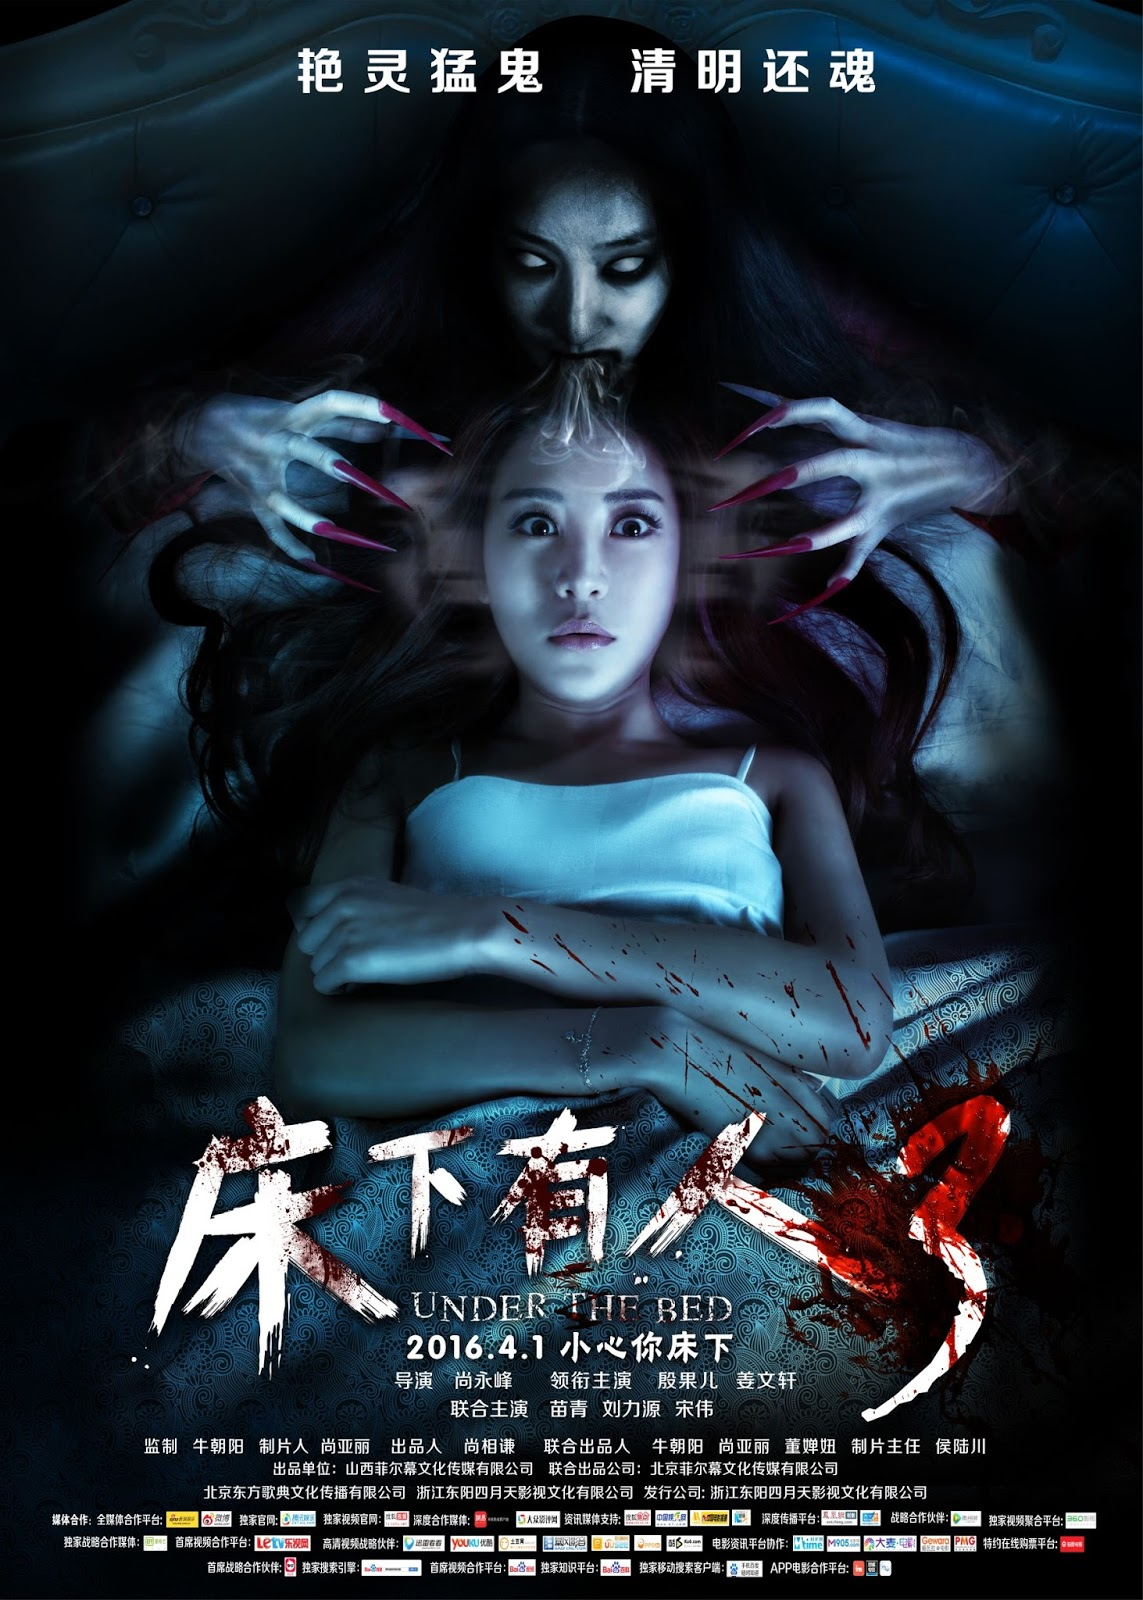 download film under the bed 3 2016 hdrip 720p subtitle